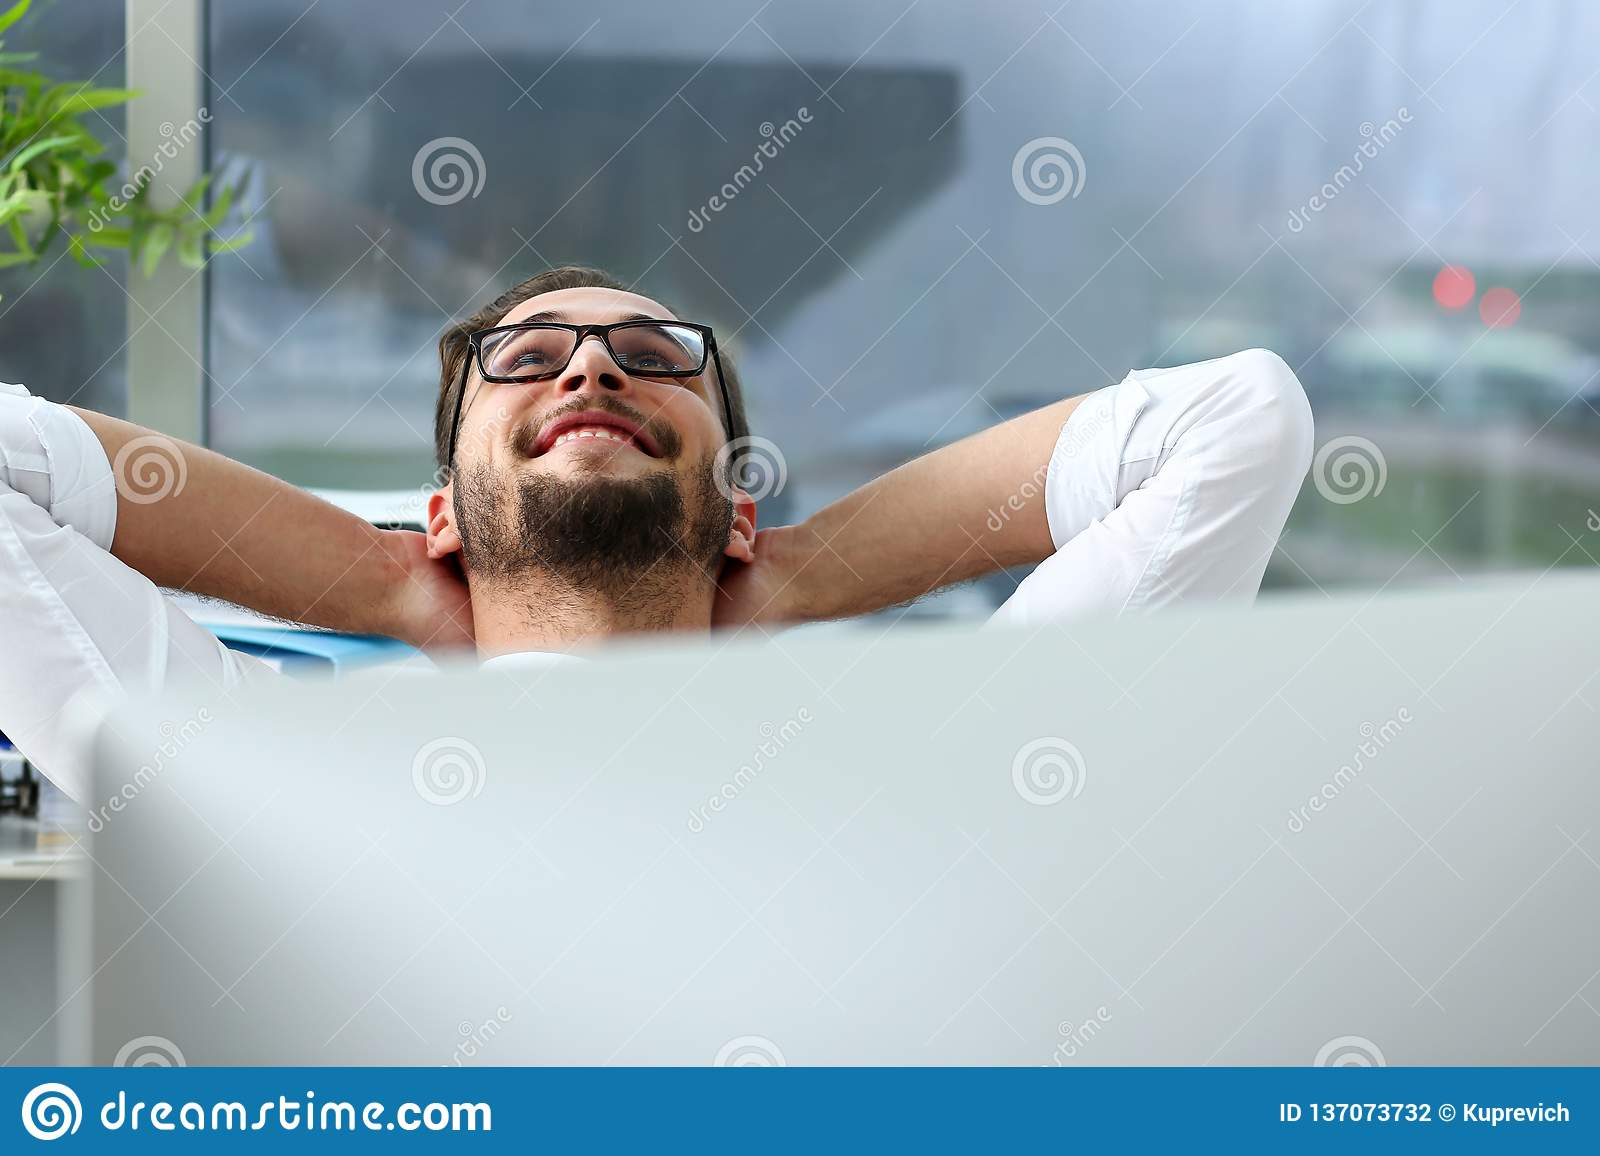 Handsome Smiling Bearded Adult Clerk Person Arms Crossed